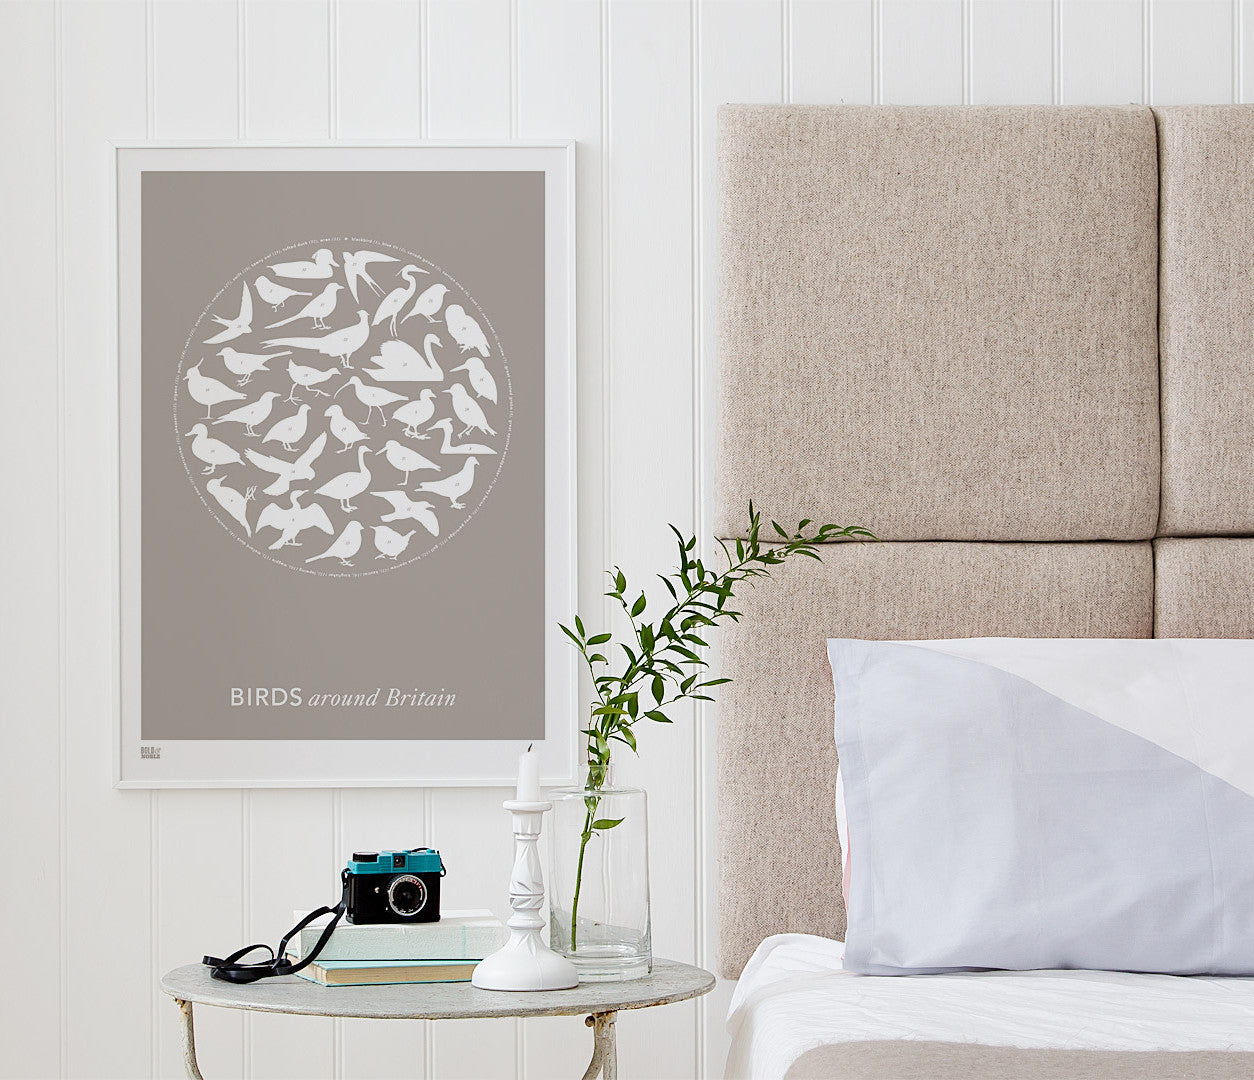 Pictures and wall art, screen printed Birds Around Britain poster in warm grey